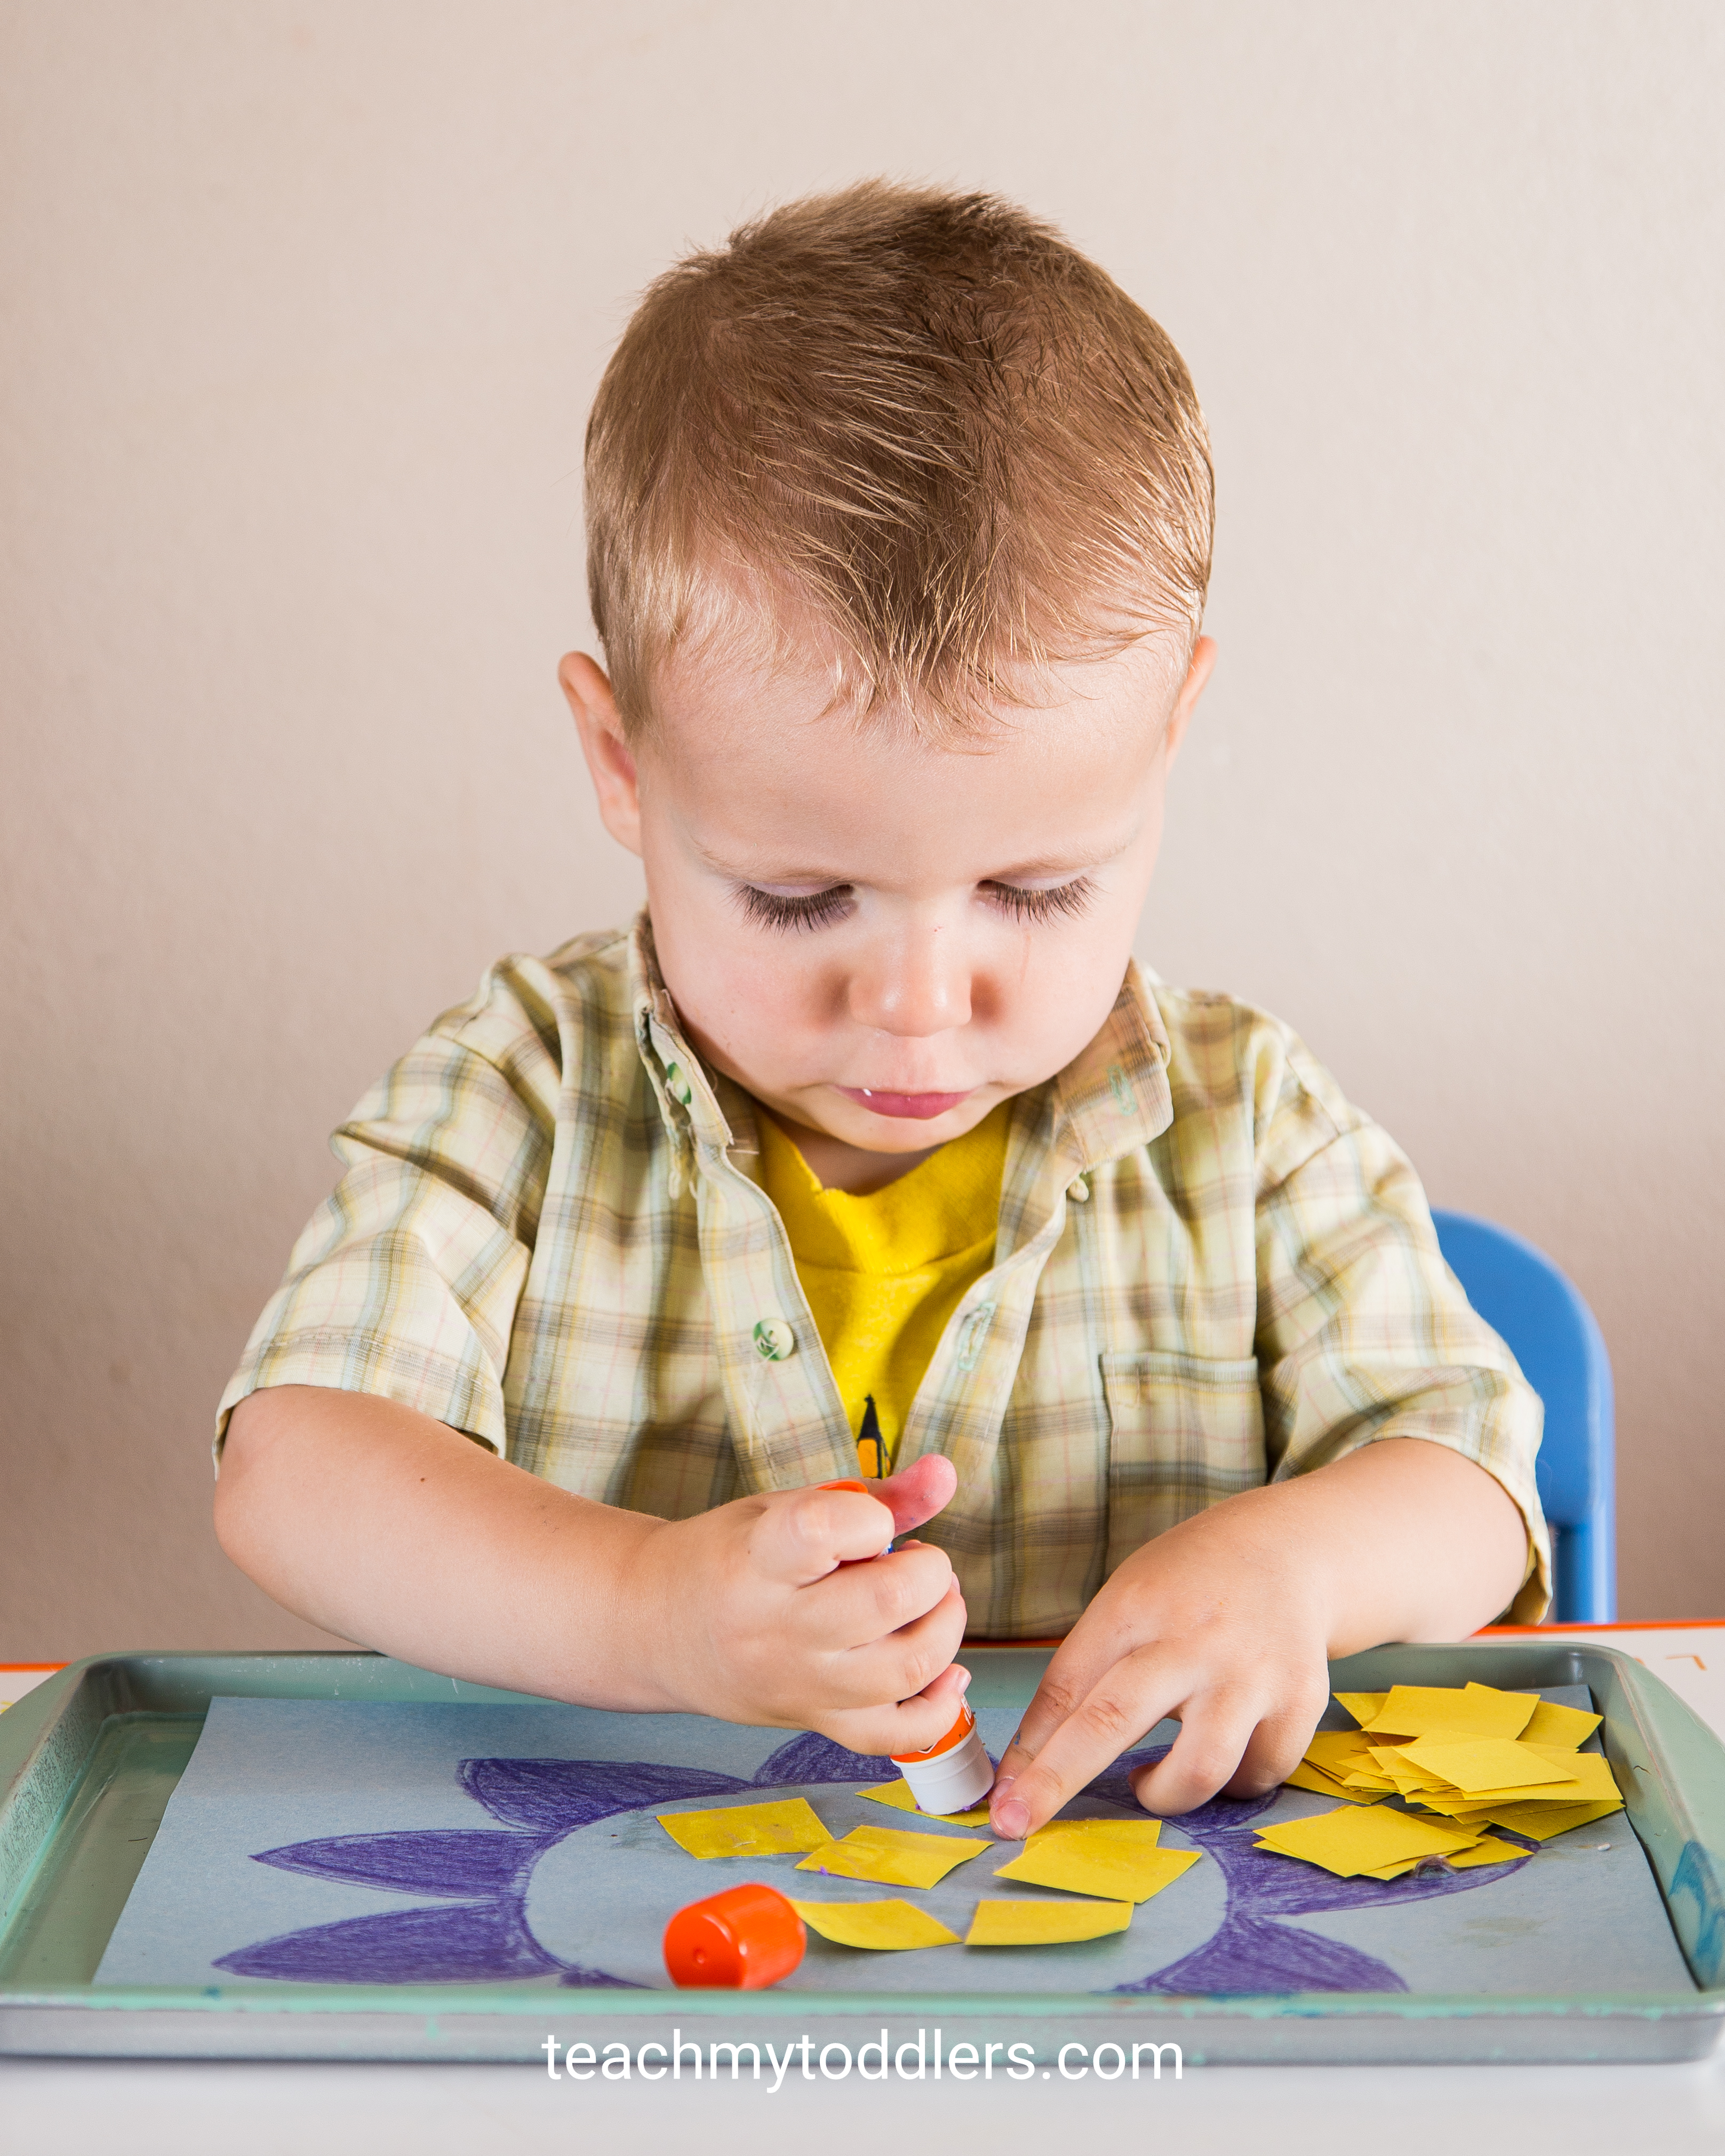 Find out how to teach your toddlers the color yellow with these tot tray activities